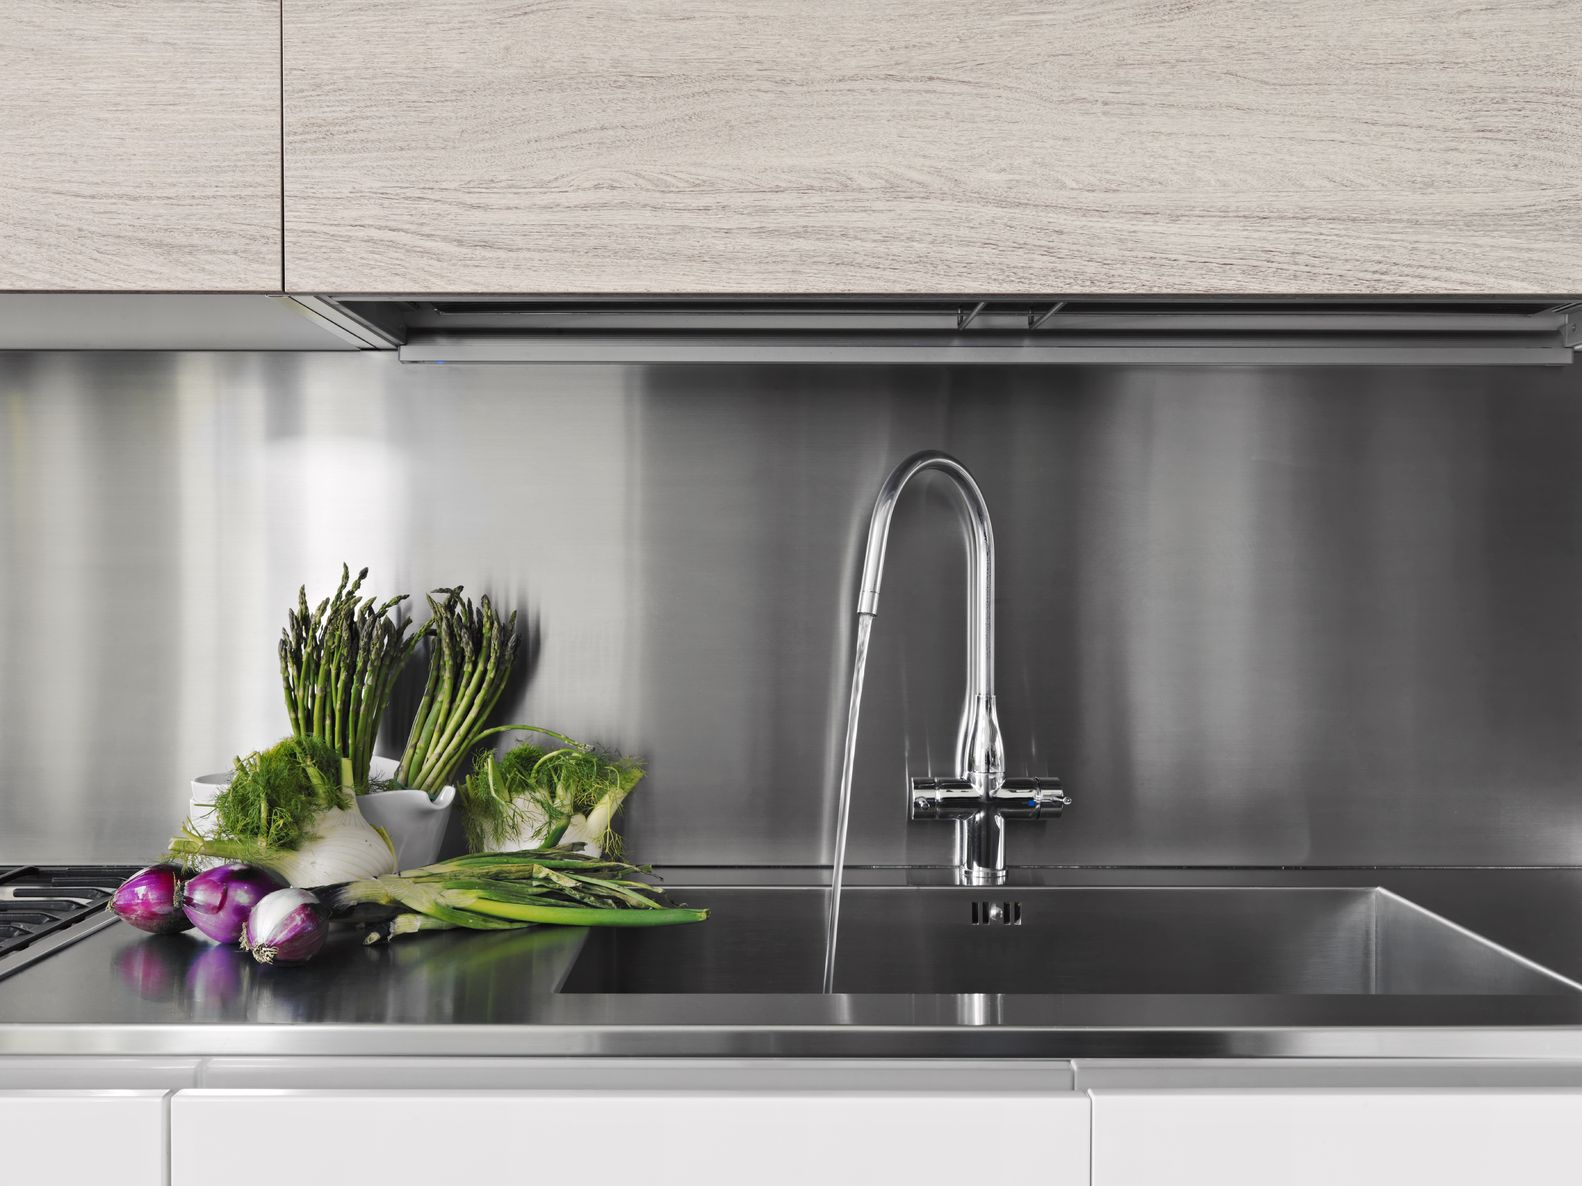 Where To Buy Good Quality Kitchen Sinks